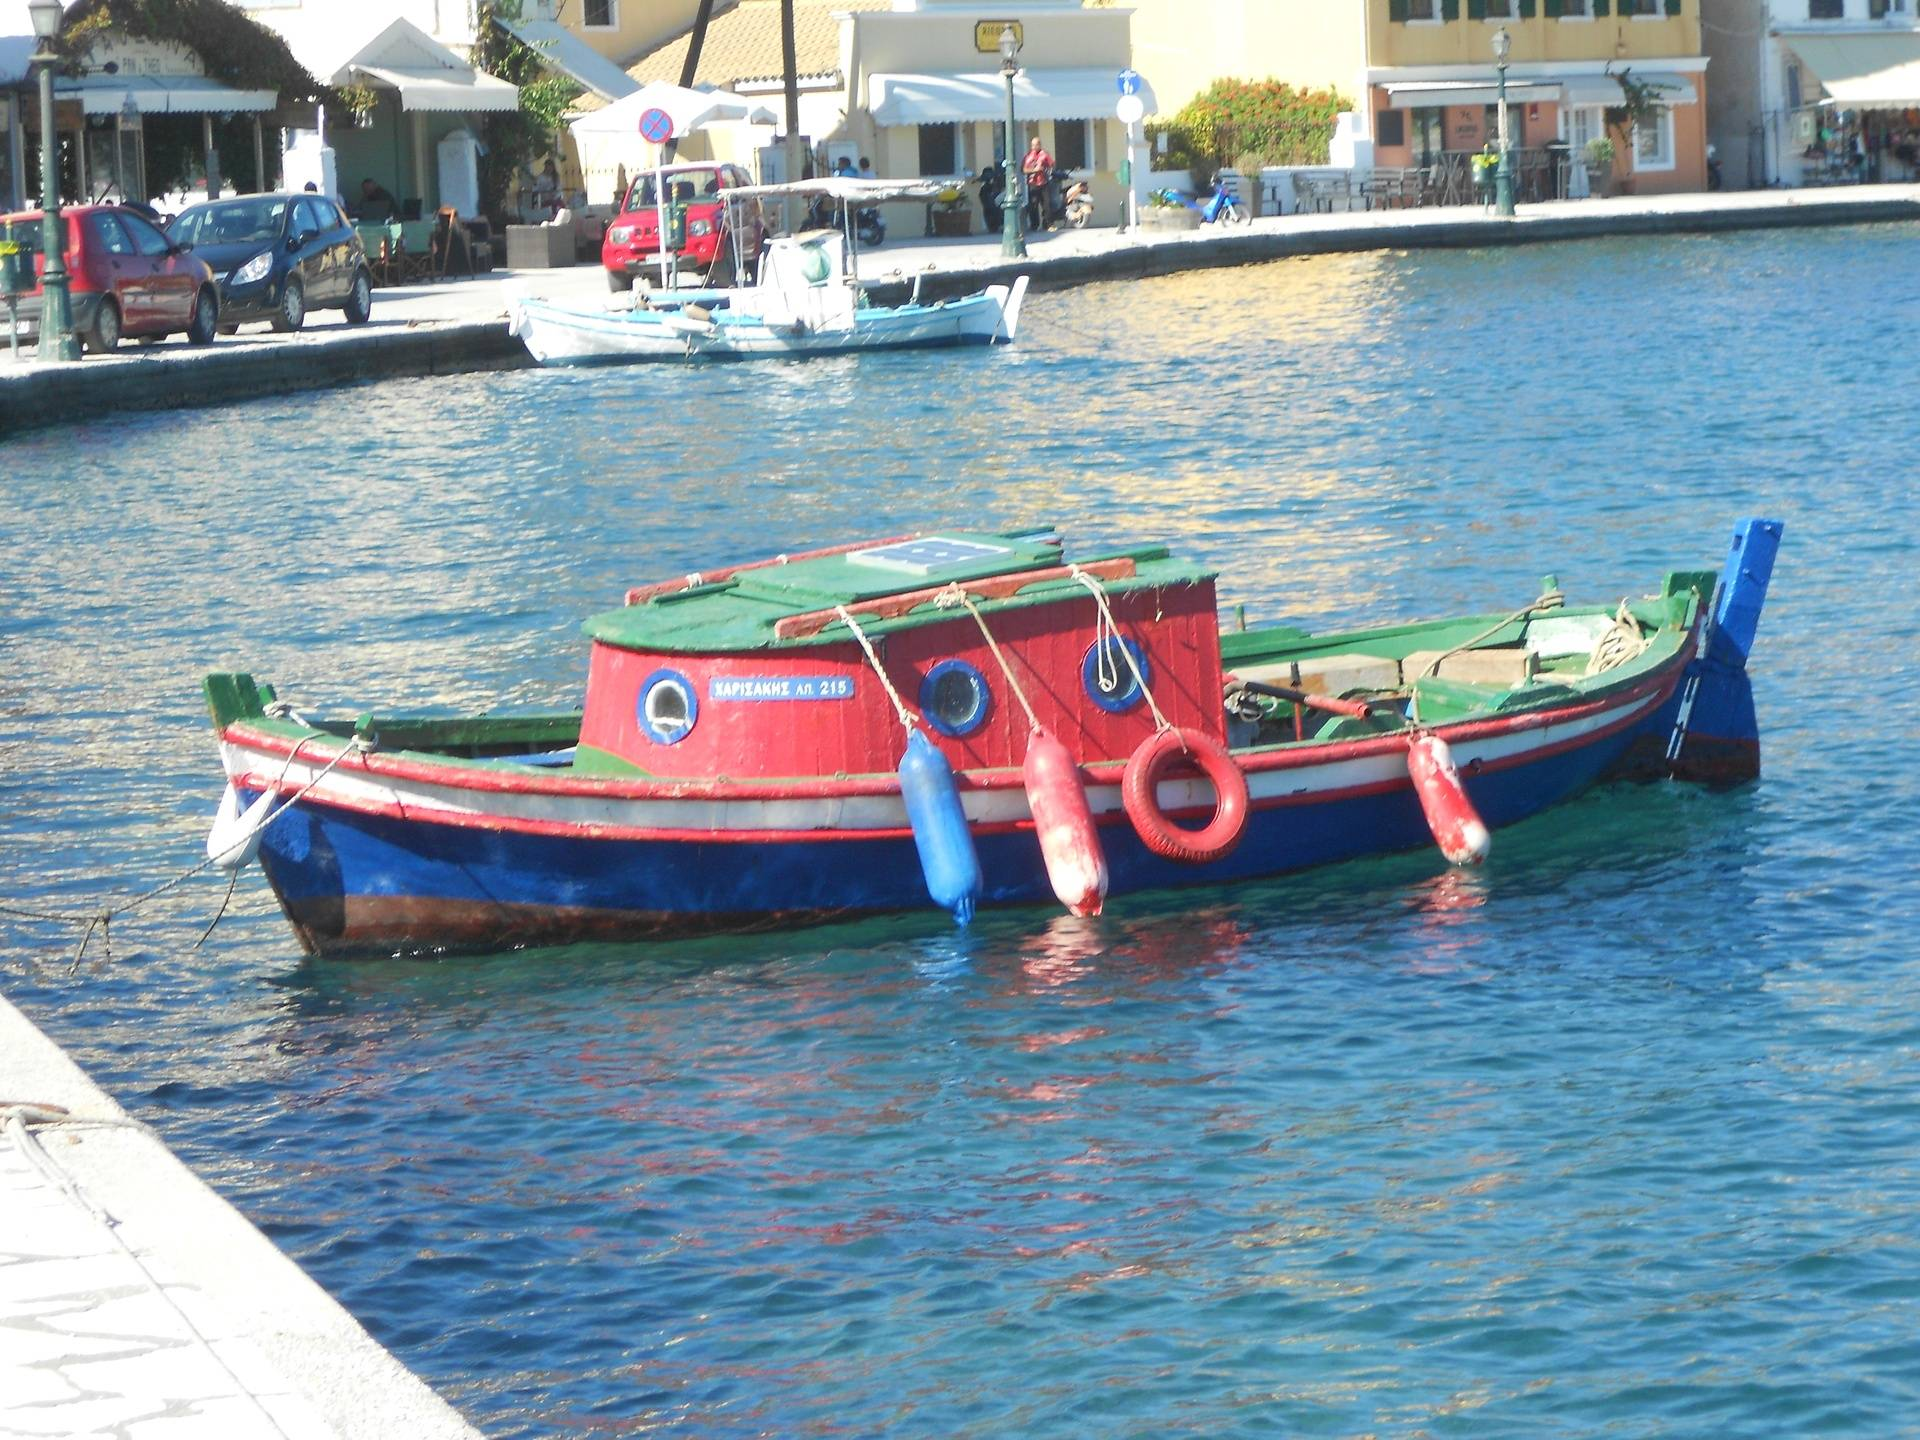 Our favourite fishing boat